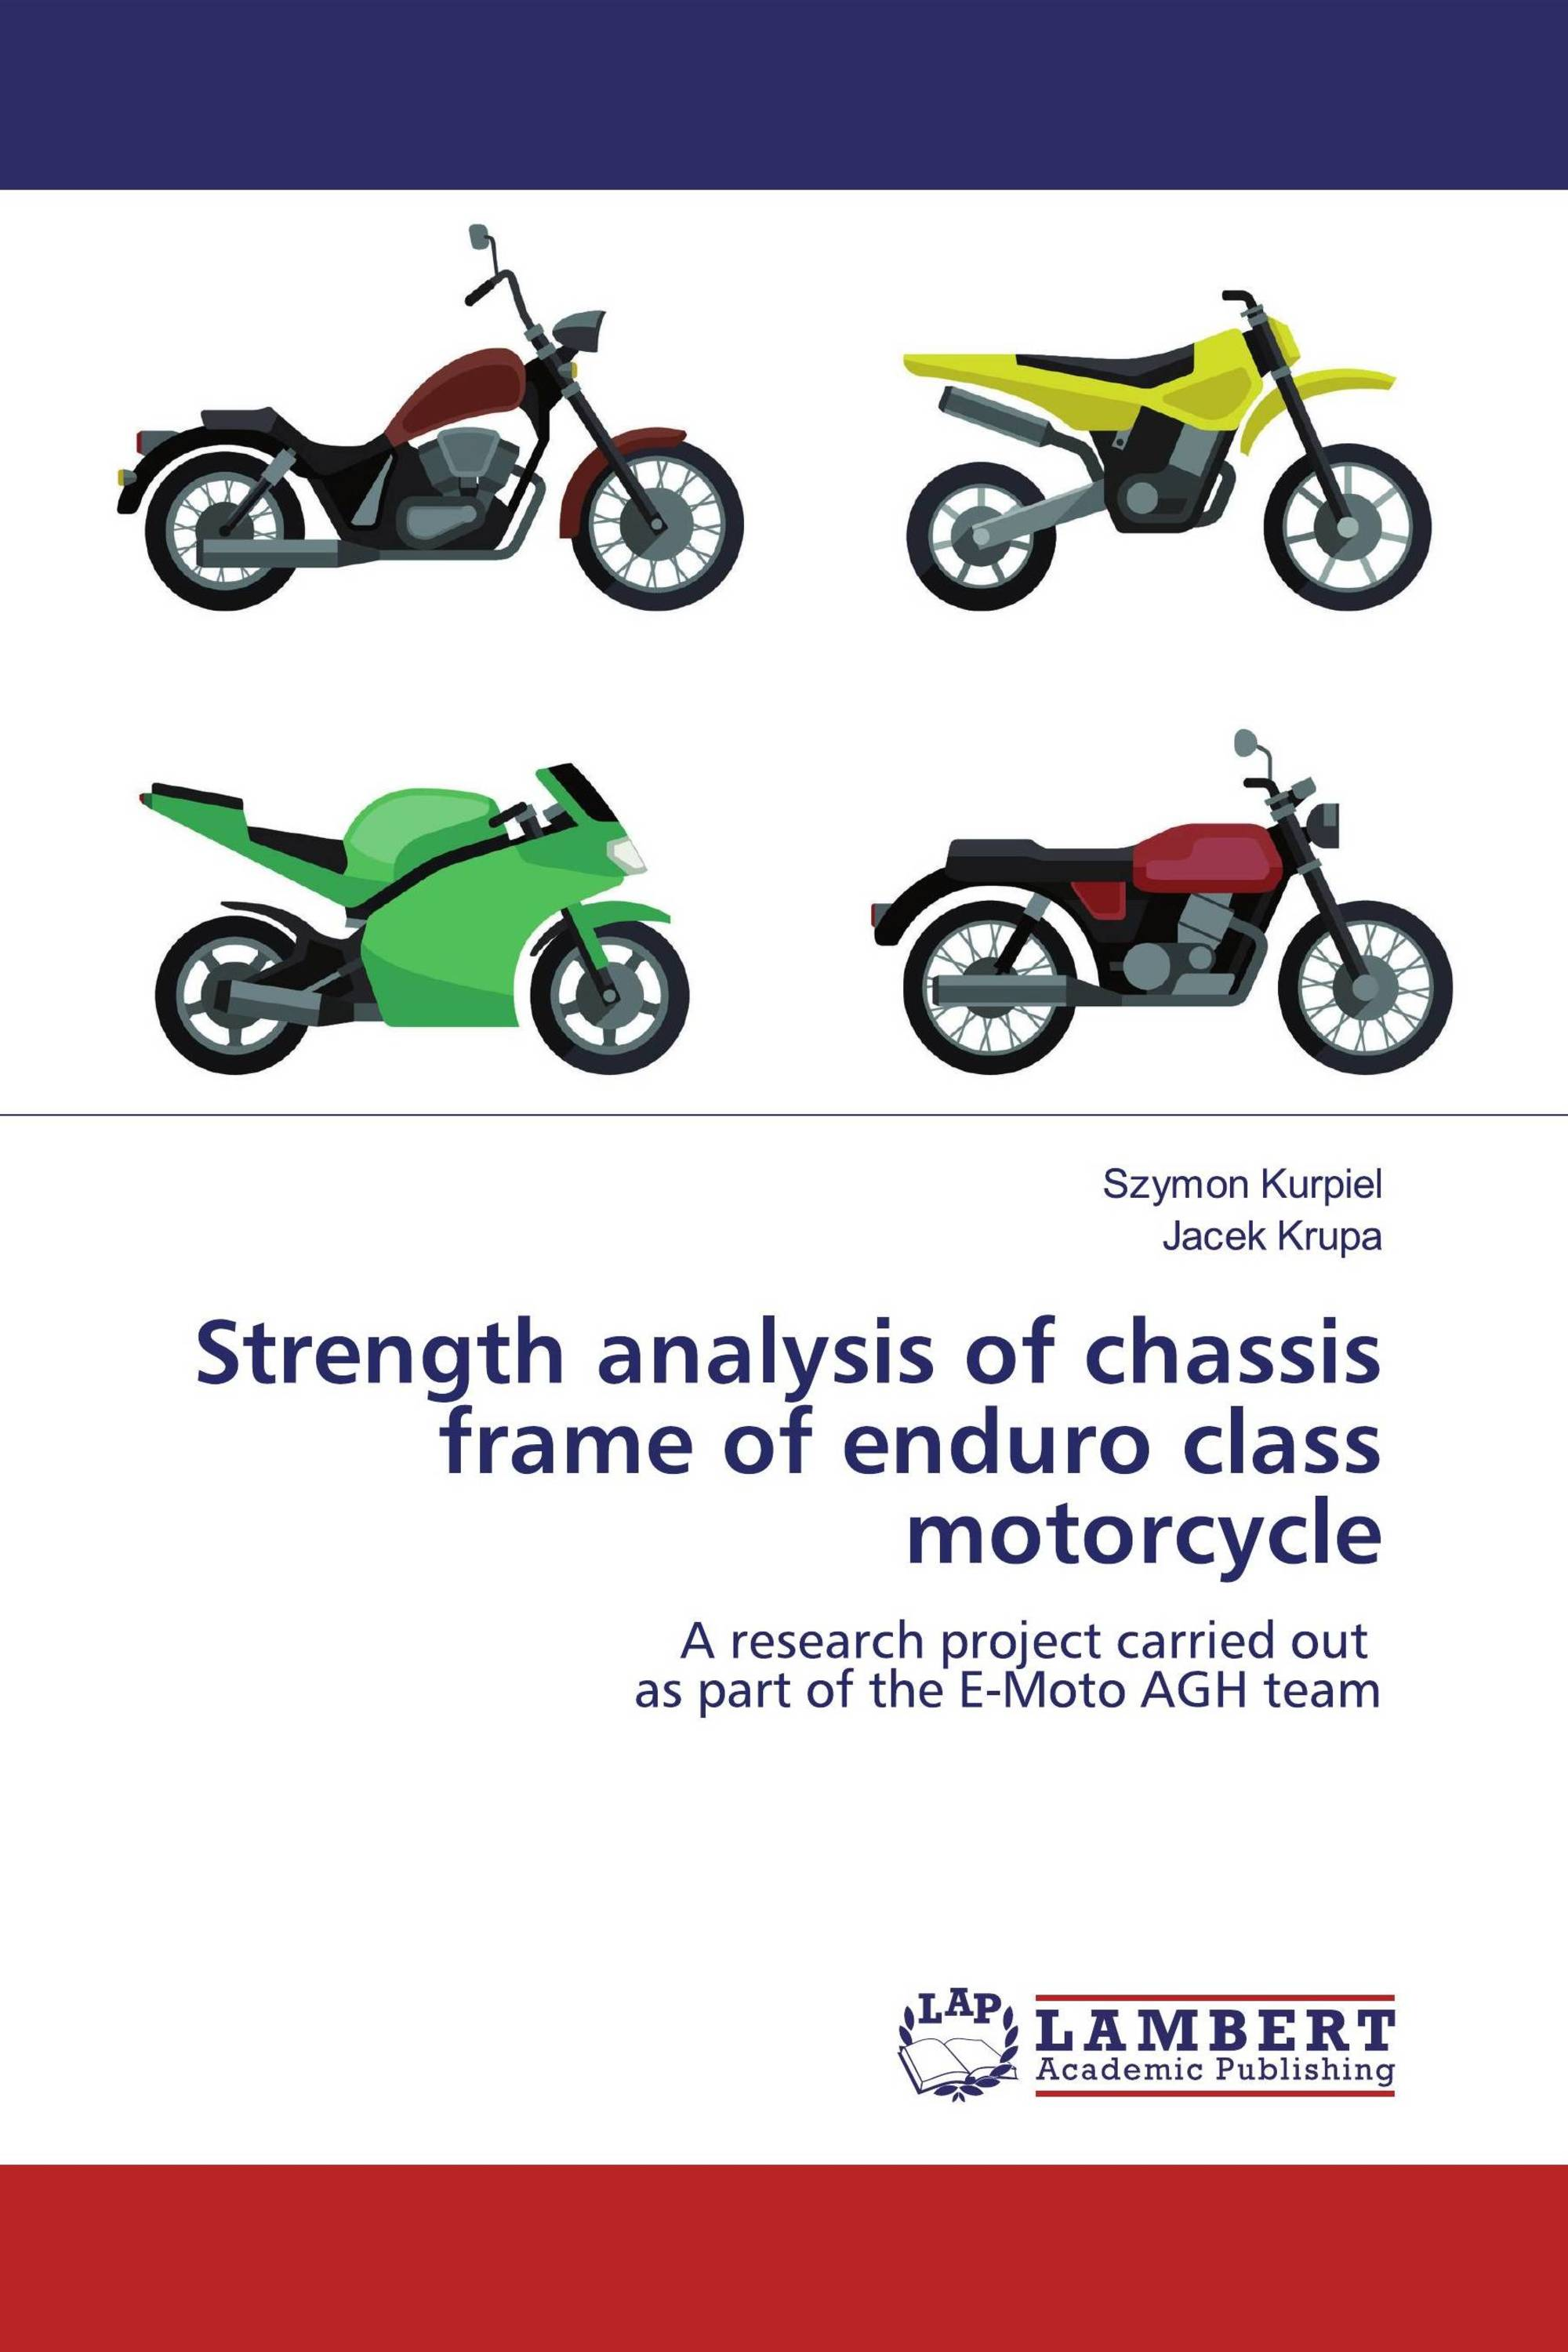 Strength analysis of chassis frame of enduro class